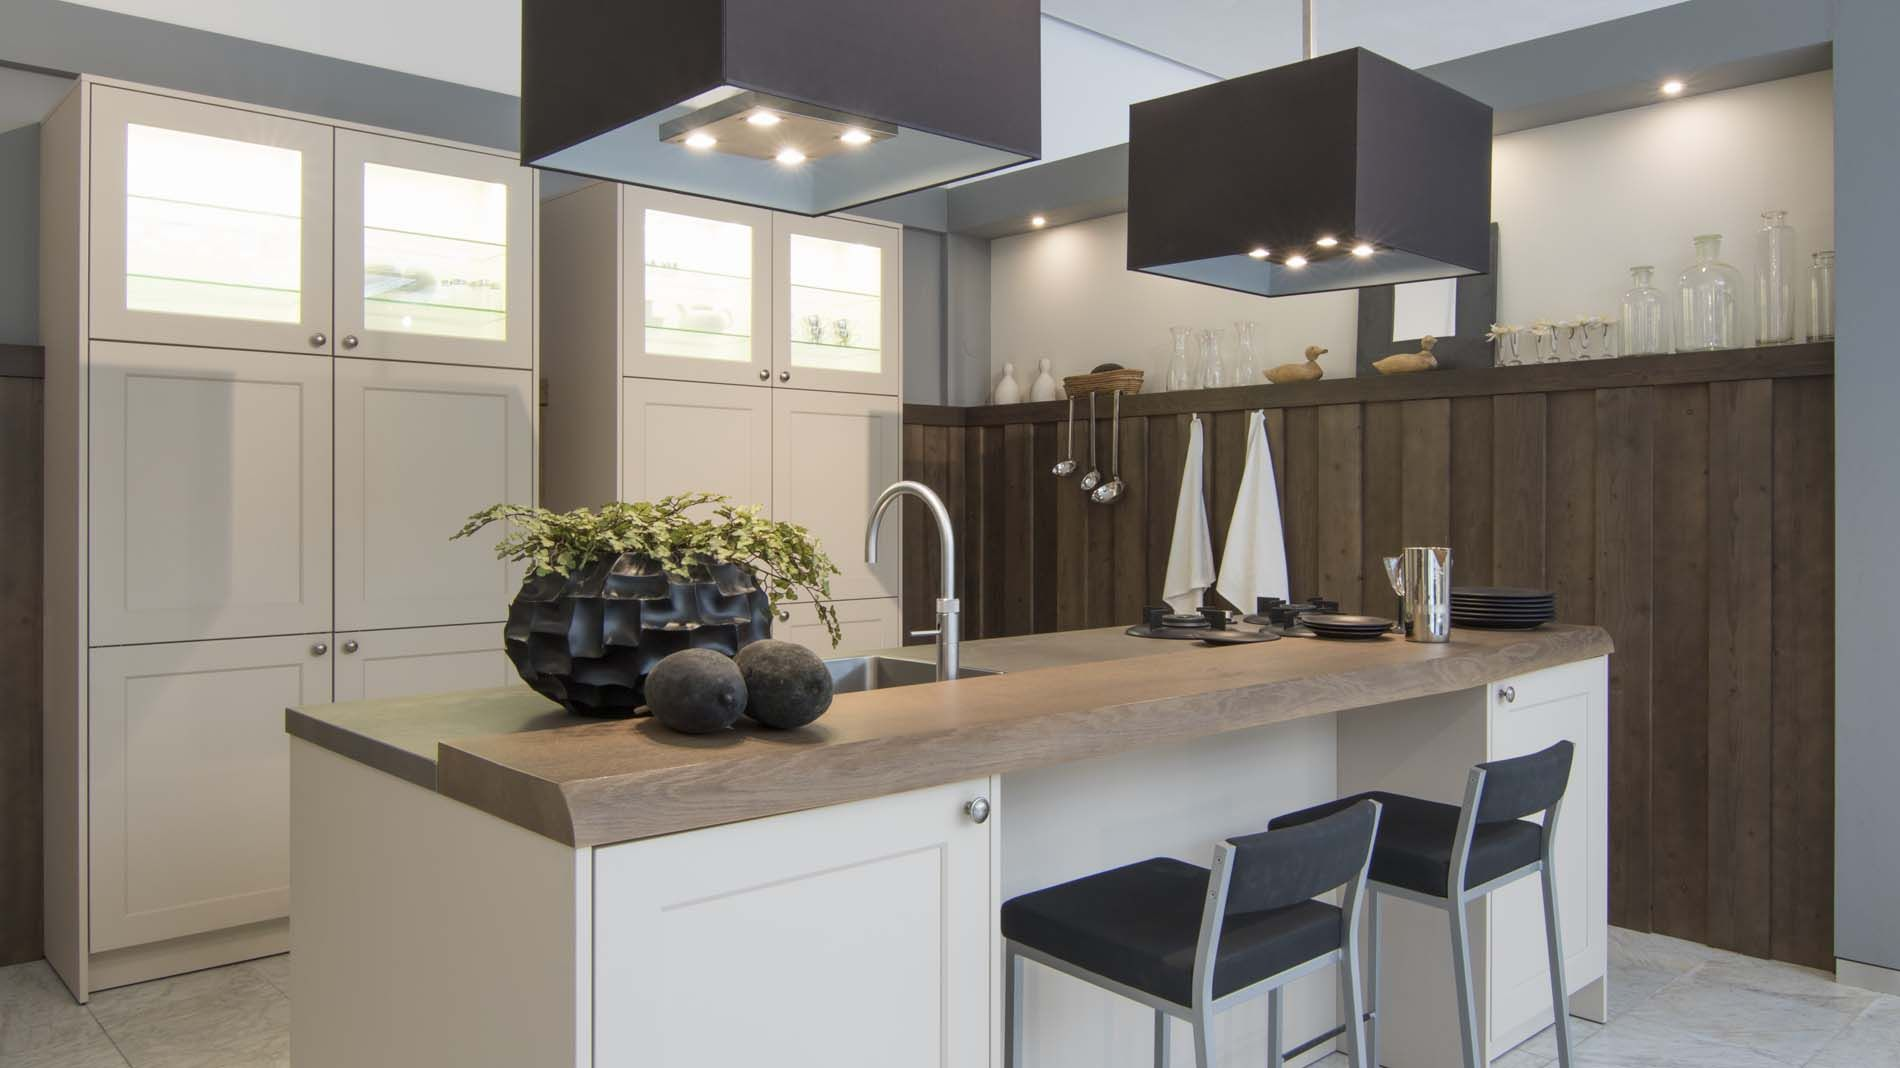 Signia by SieMatic